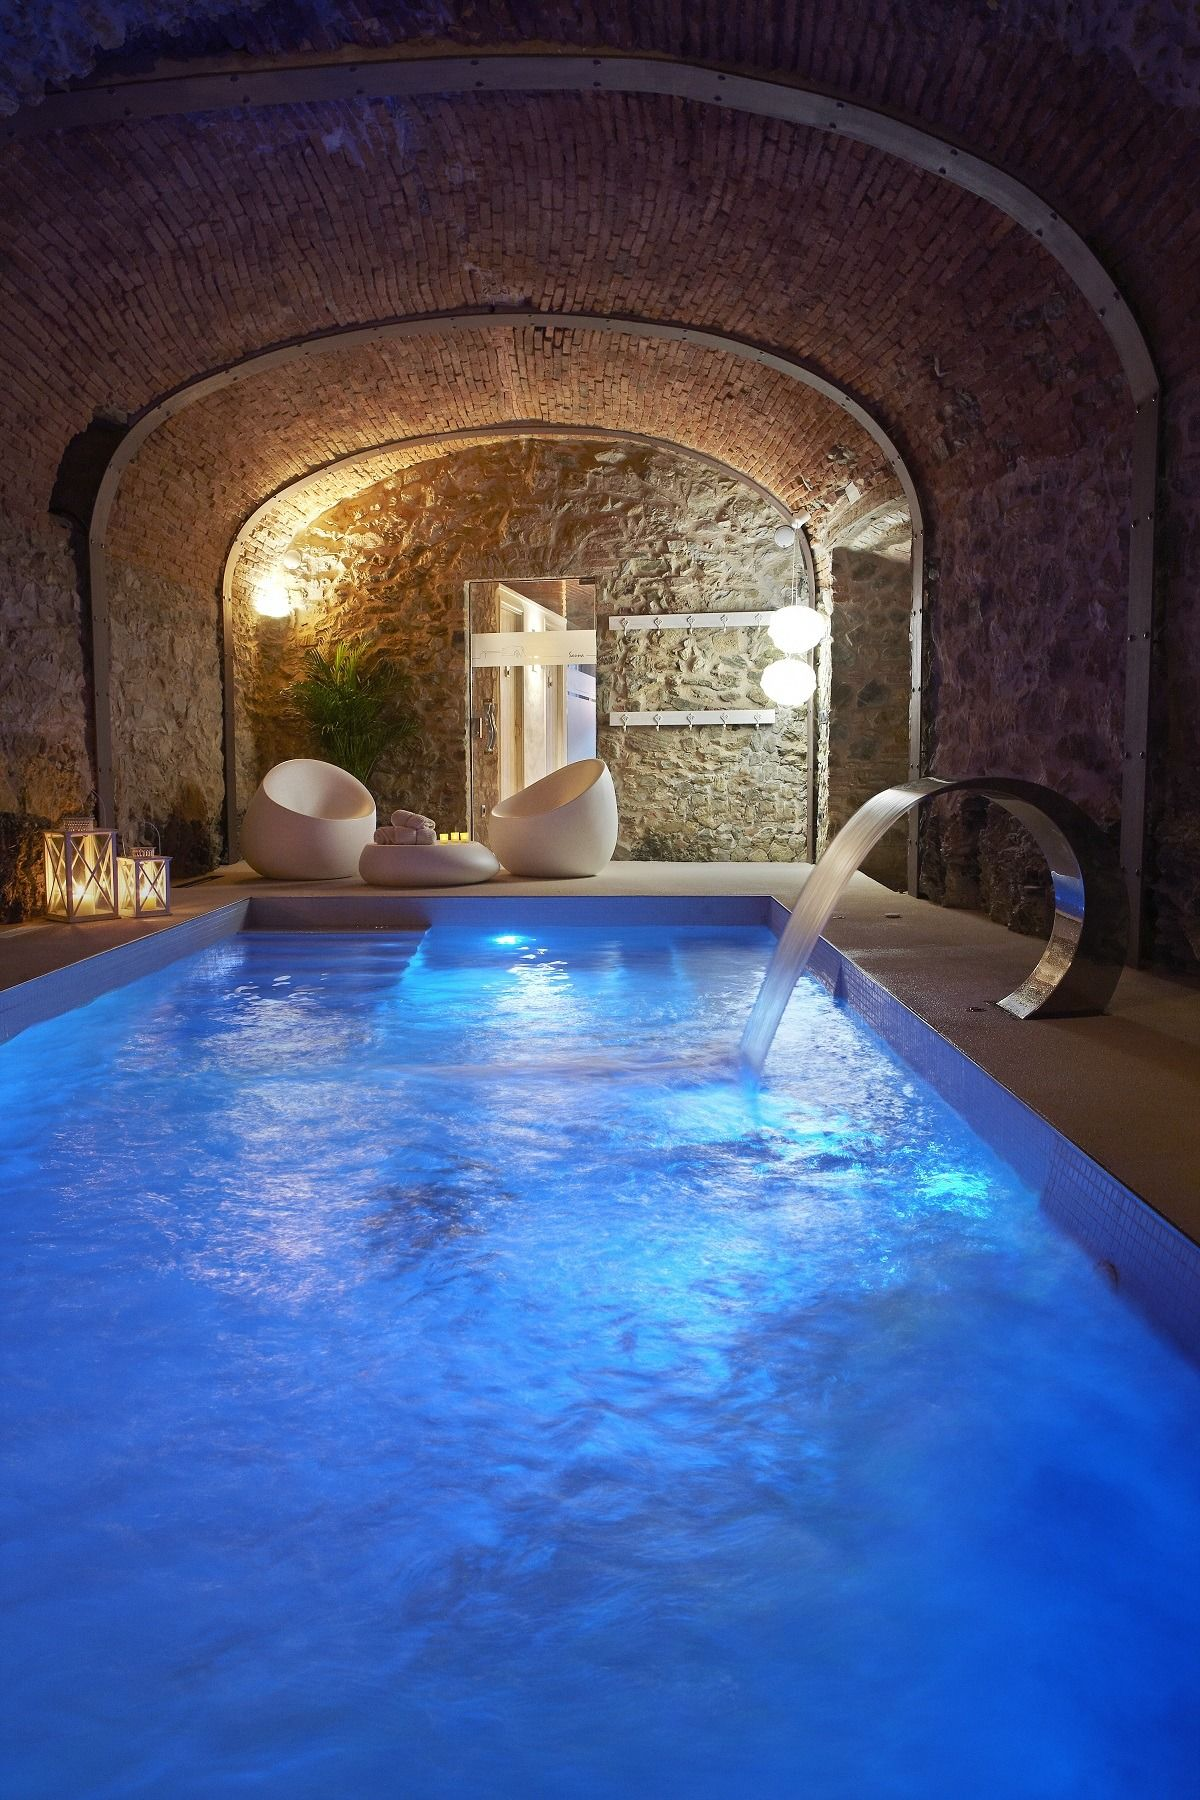 24 hotels with spectacular indoor pools amazing pools for Interni case lussuose